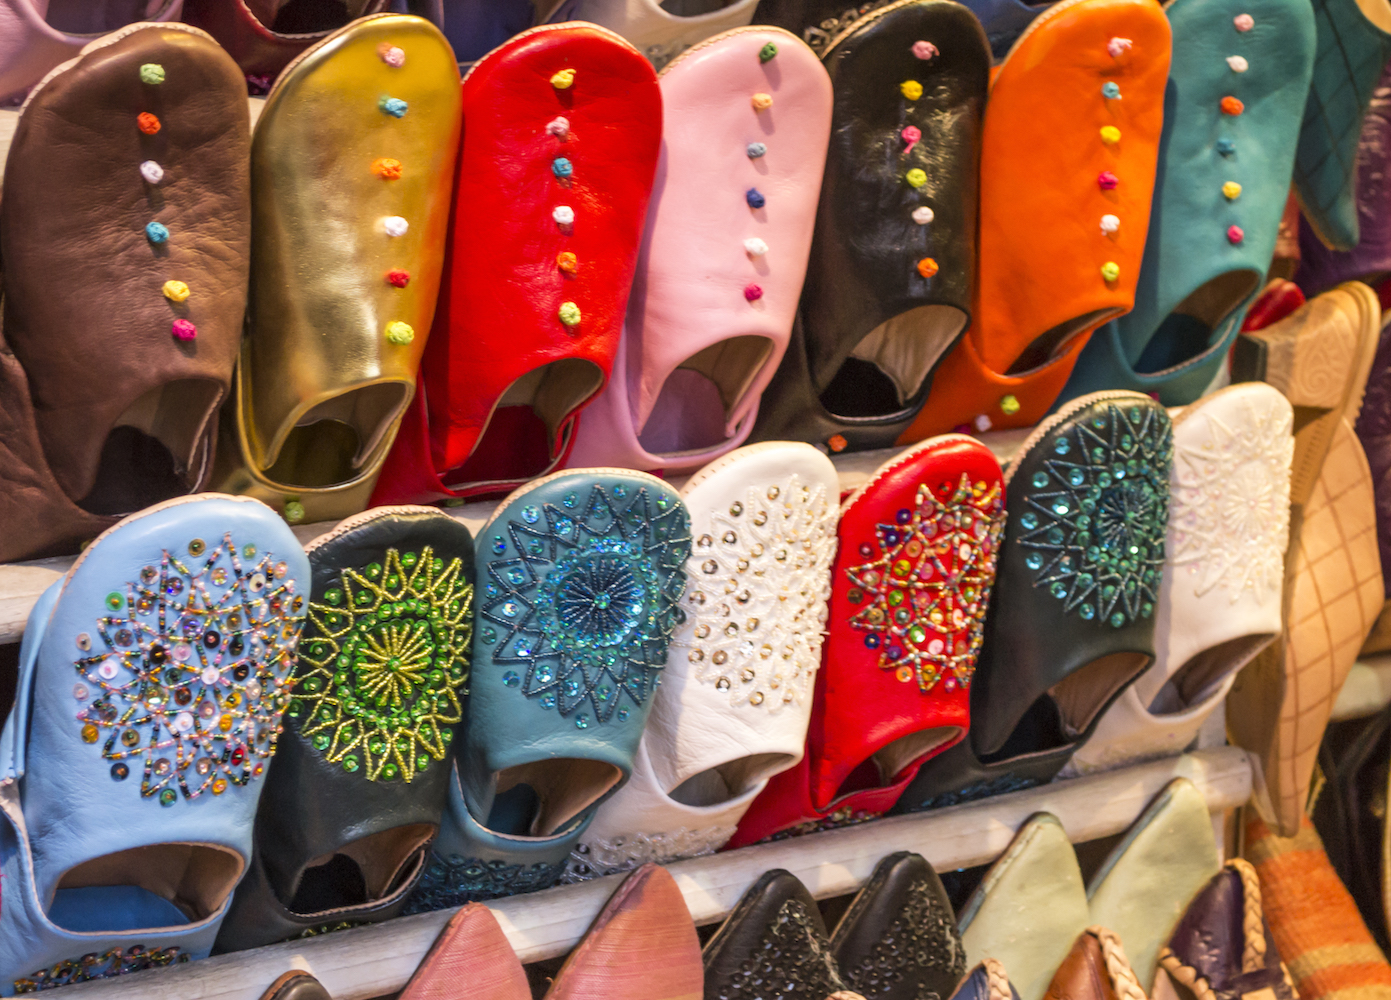 Colourful slippers on display in a Marrakech market stall.jpg